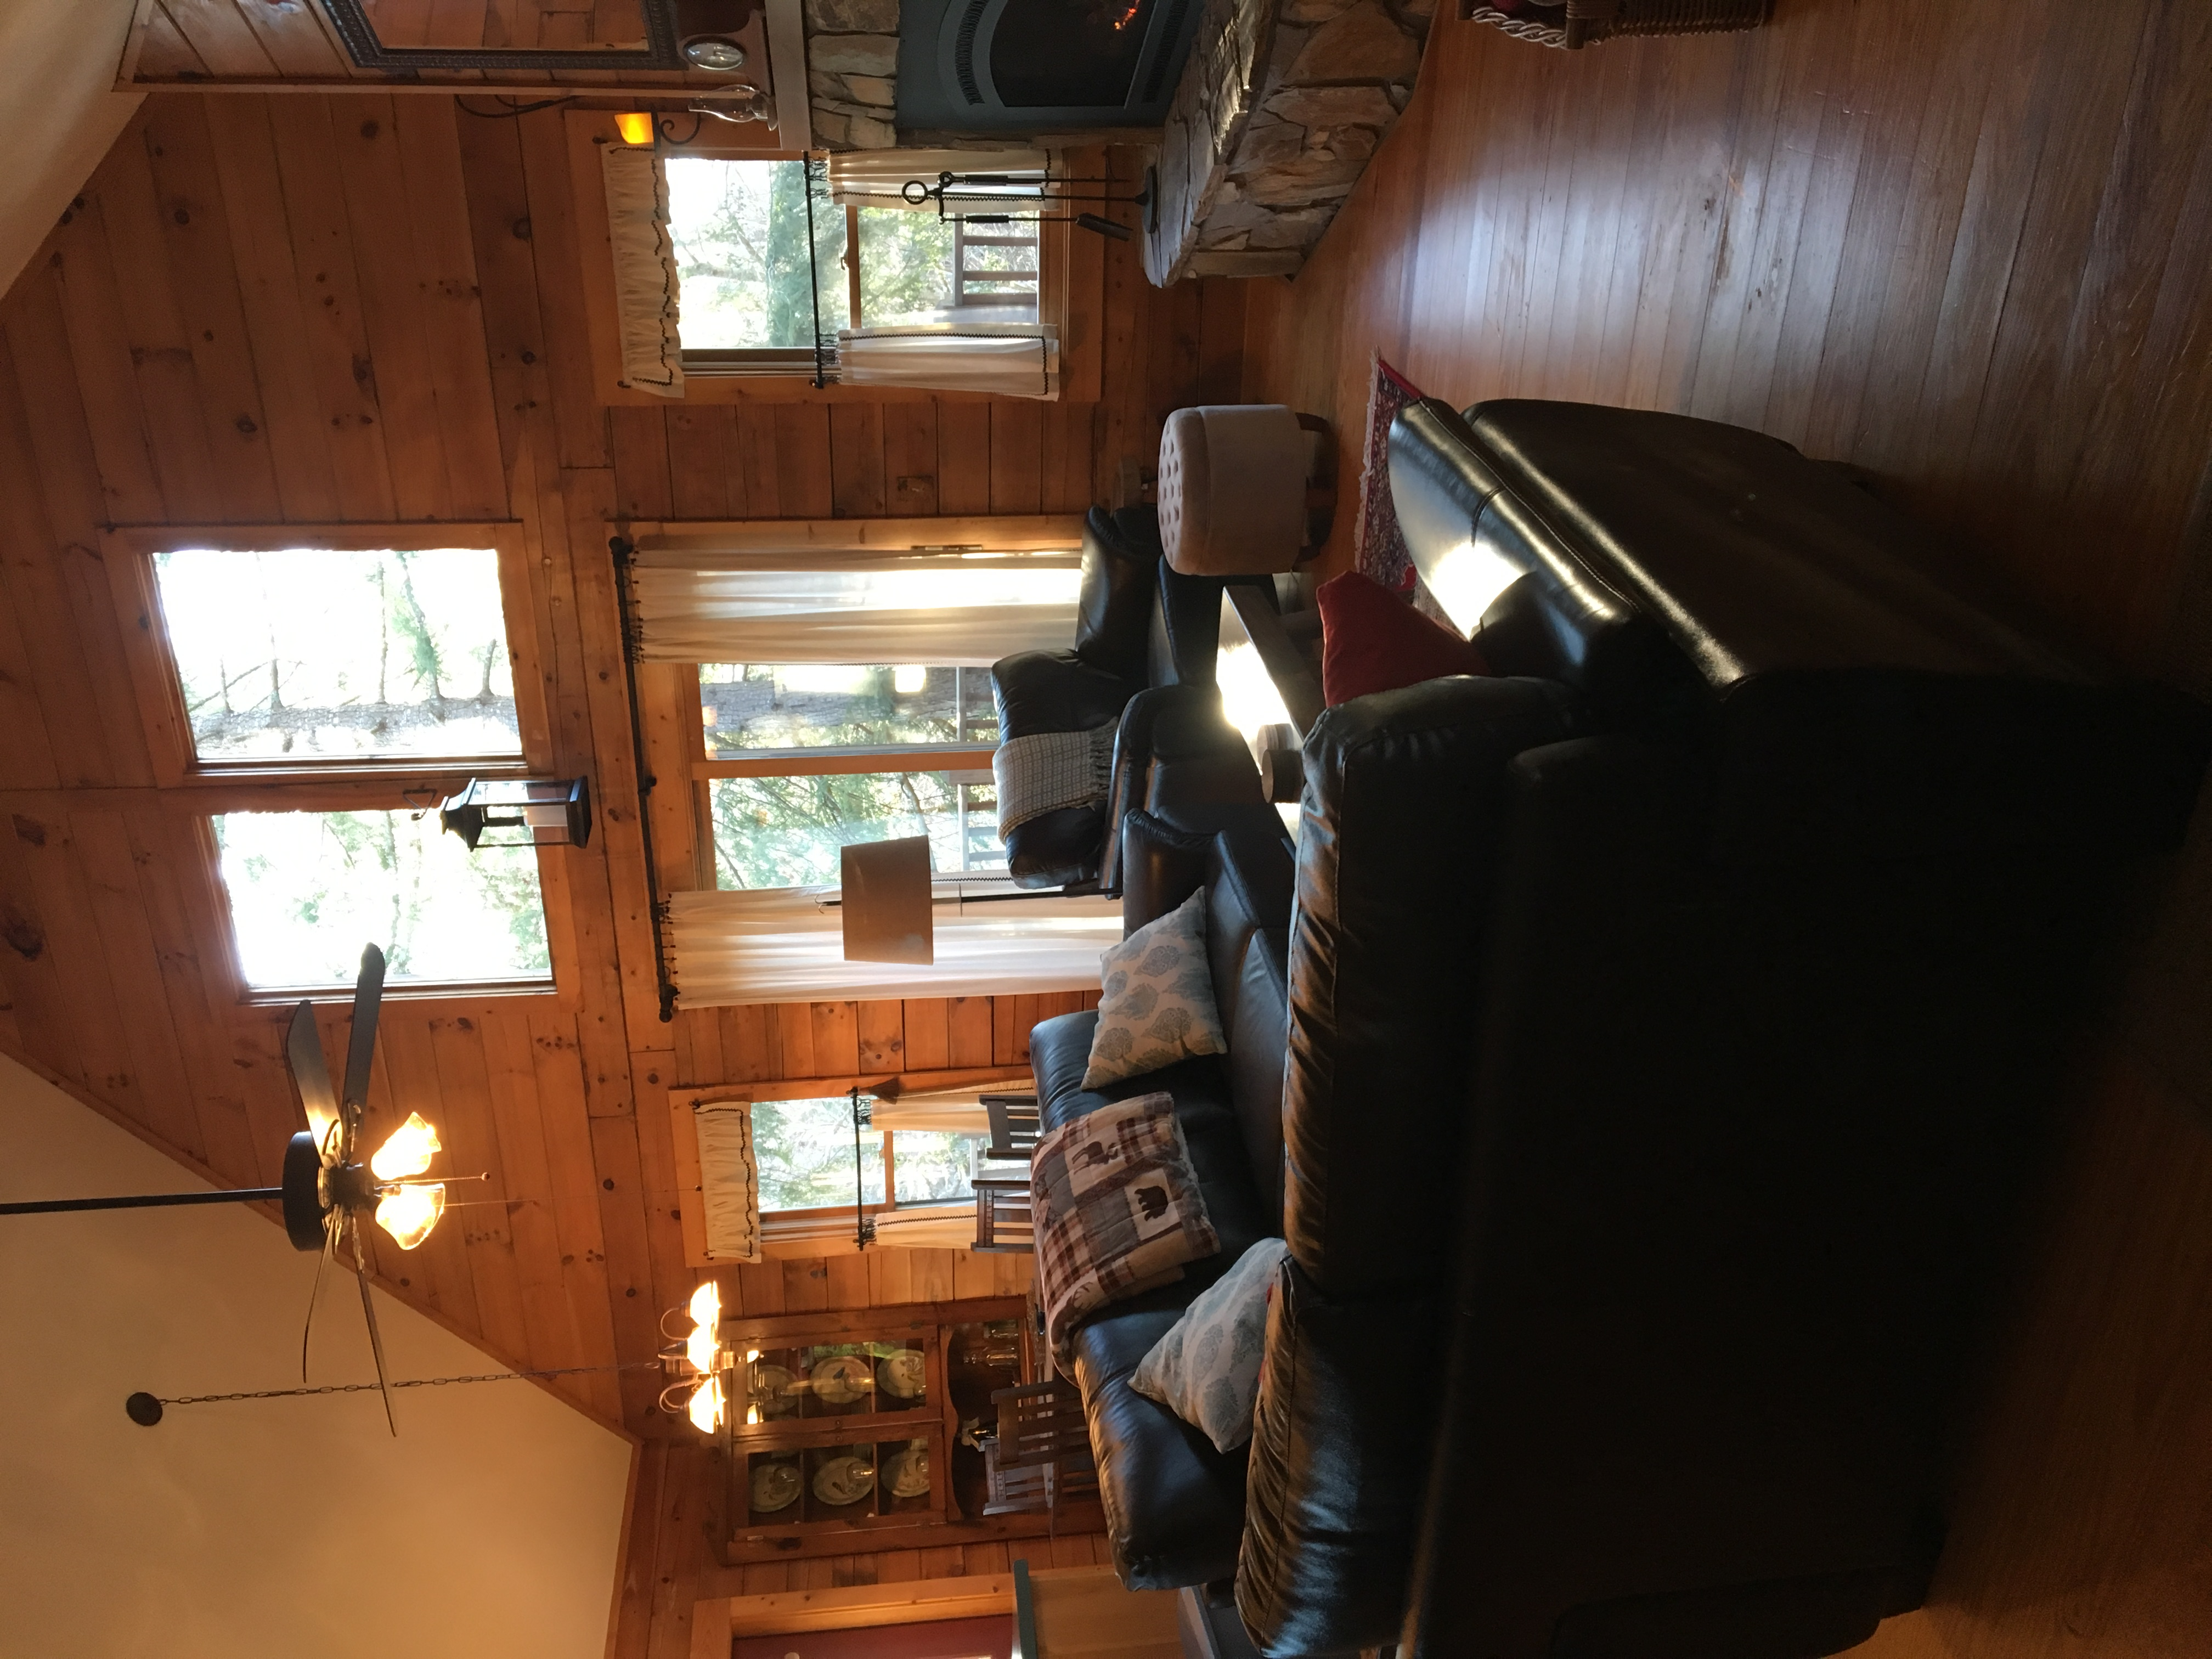 Living room with deck off the side